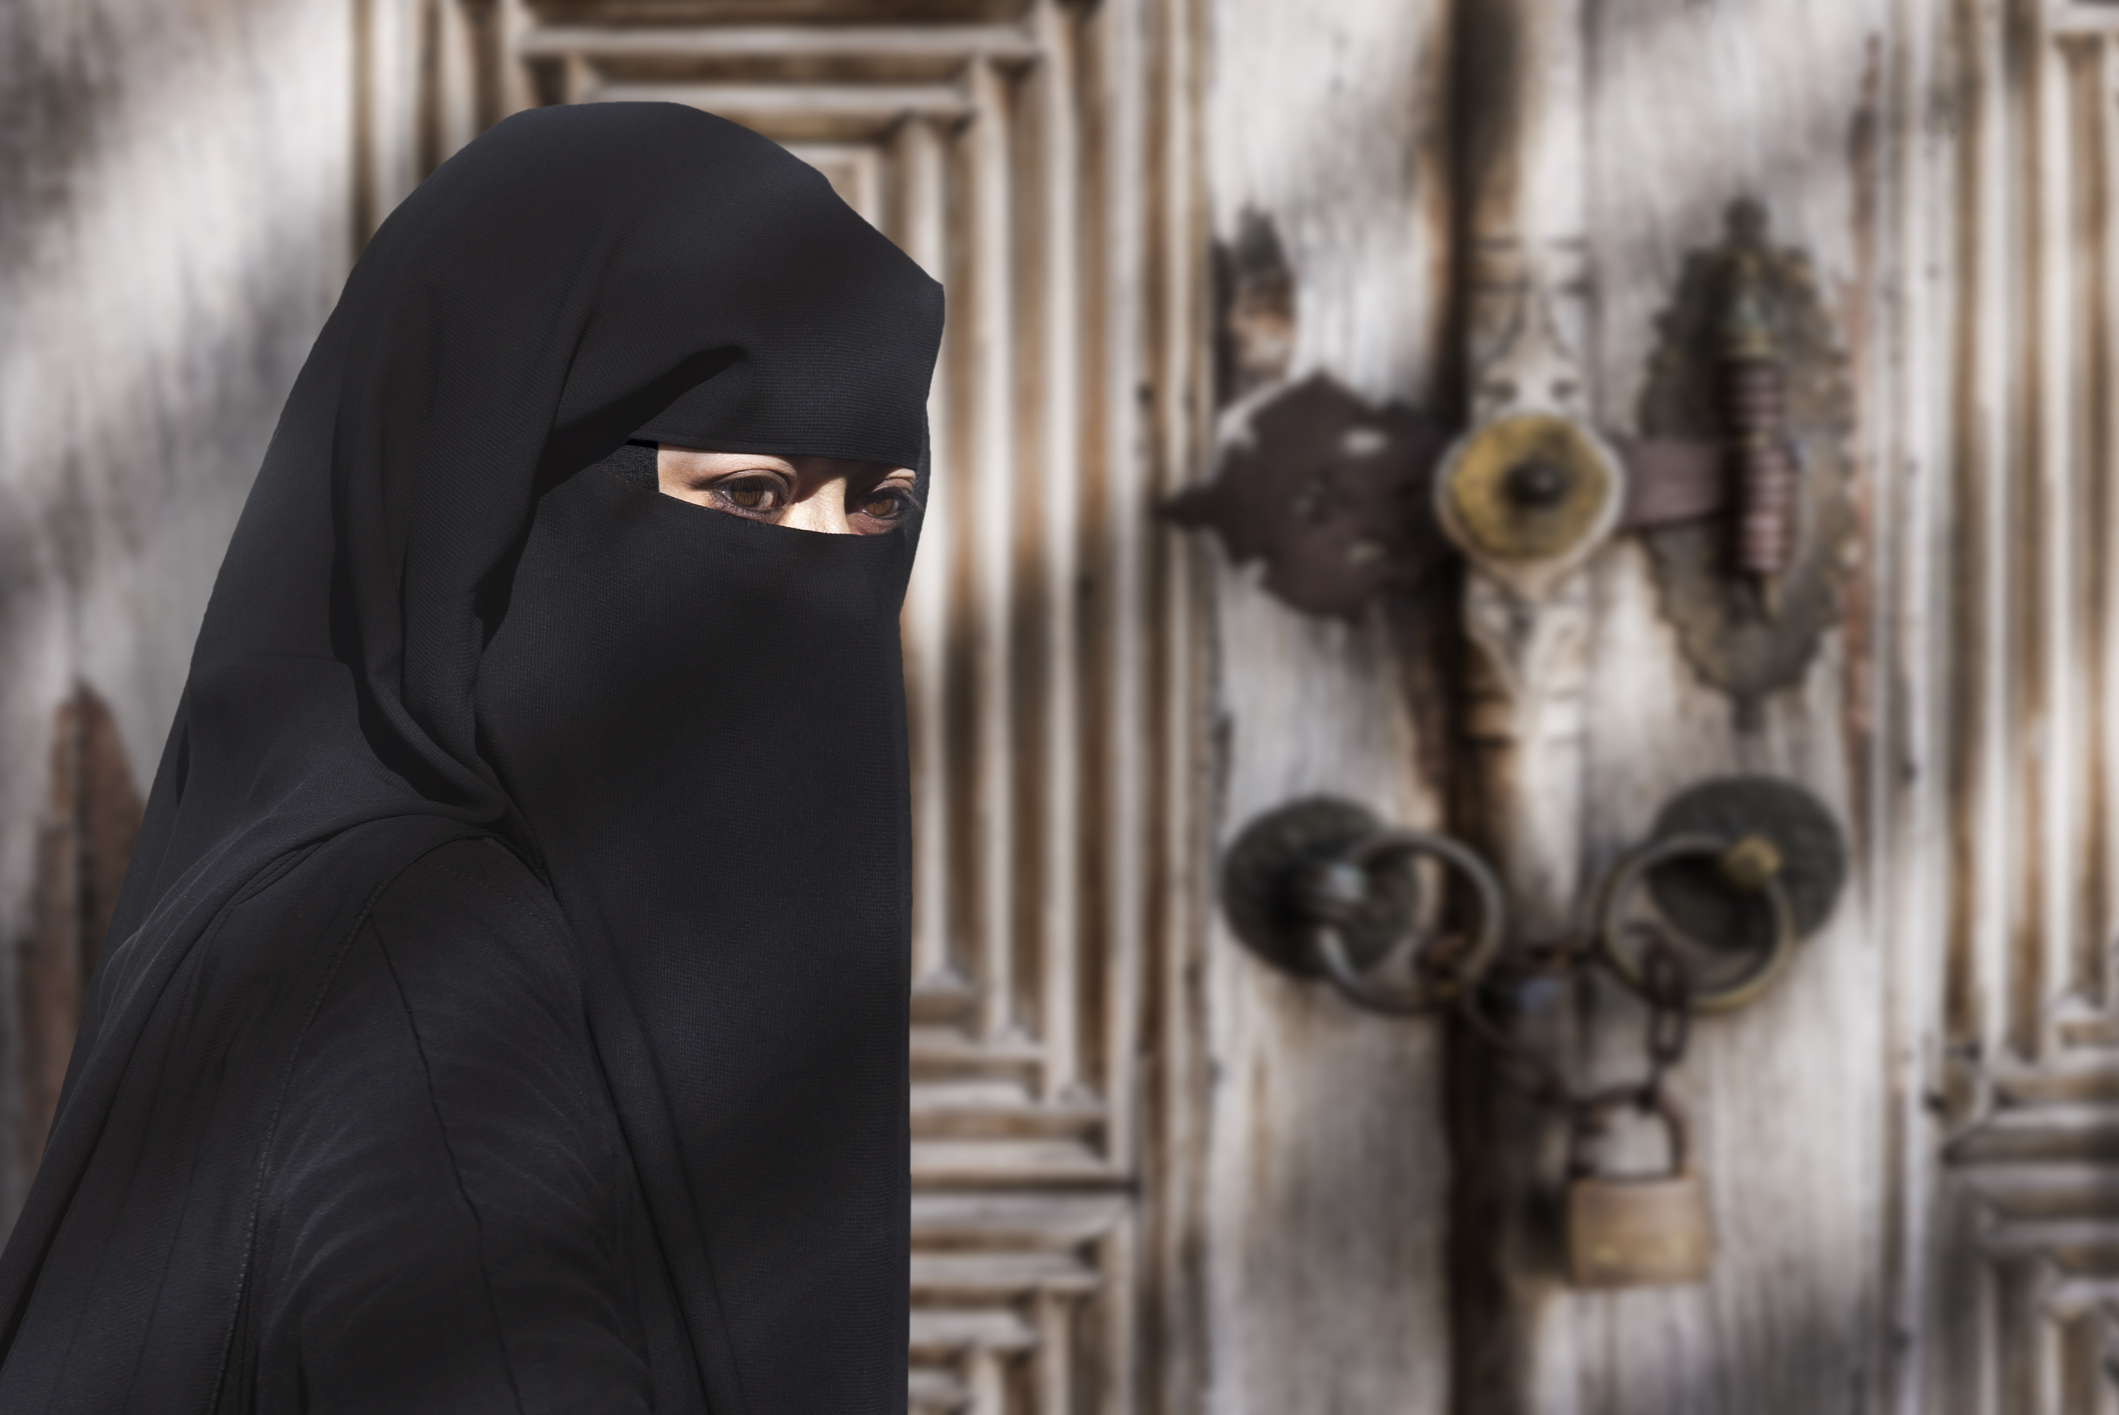 A mysterious Middle Eastern woman wearing a black Niqab.